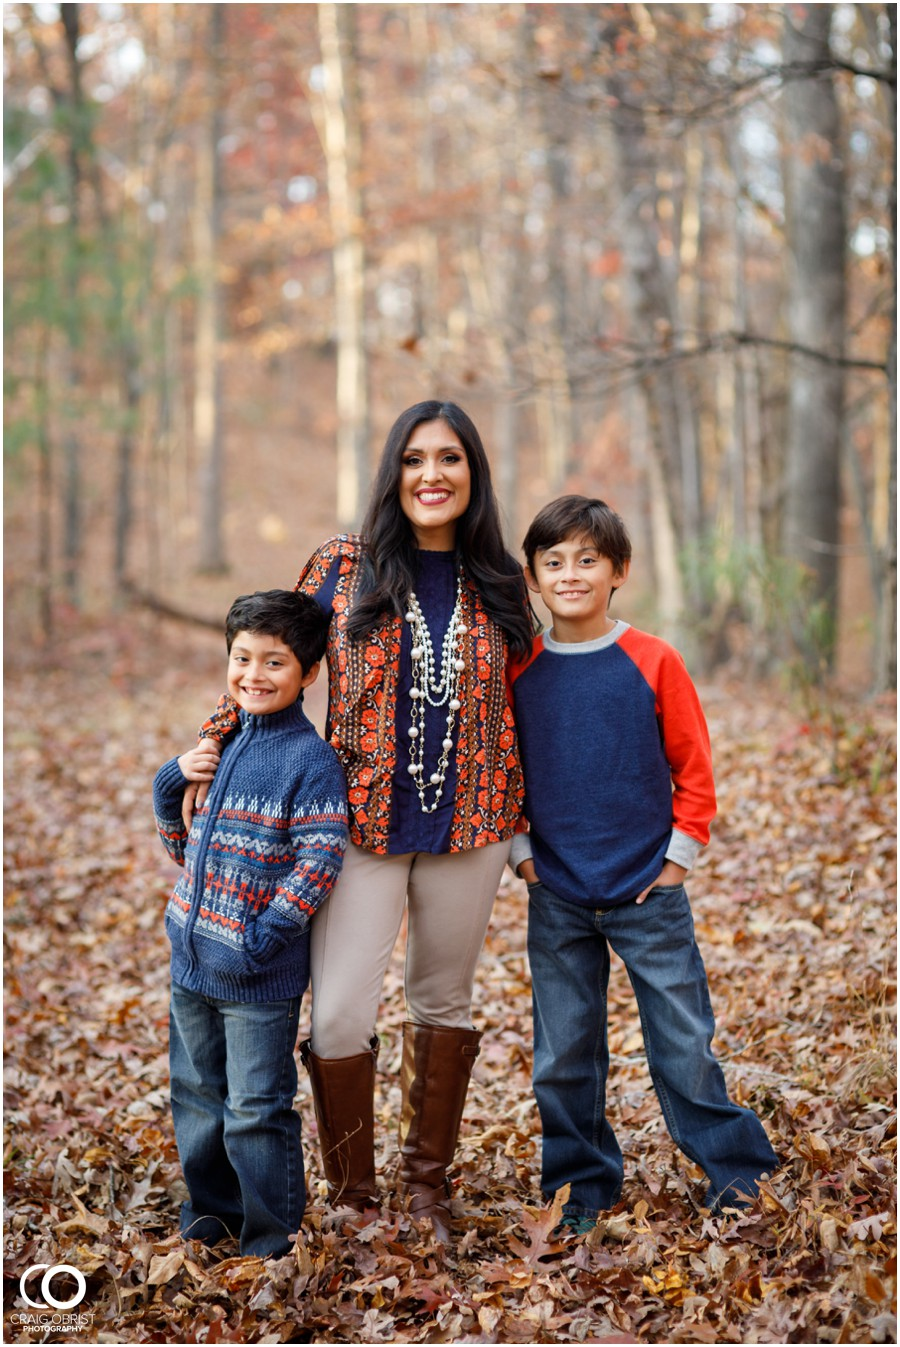 Fall Family Portraits Georgia Woods Leaves_0007.jpg